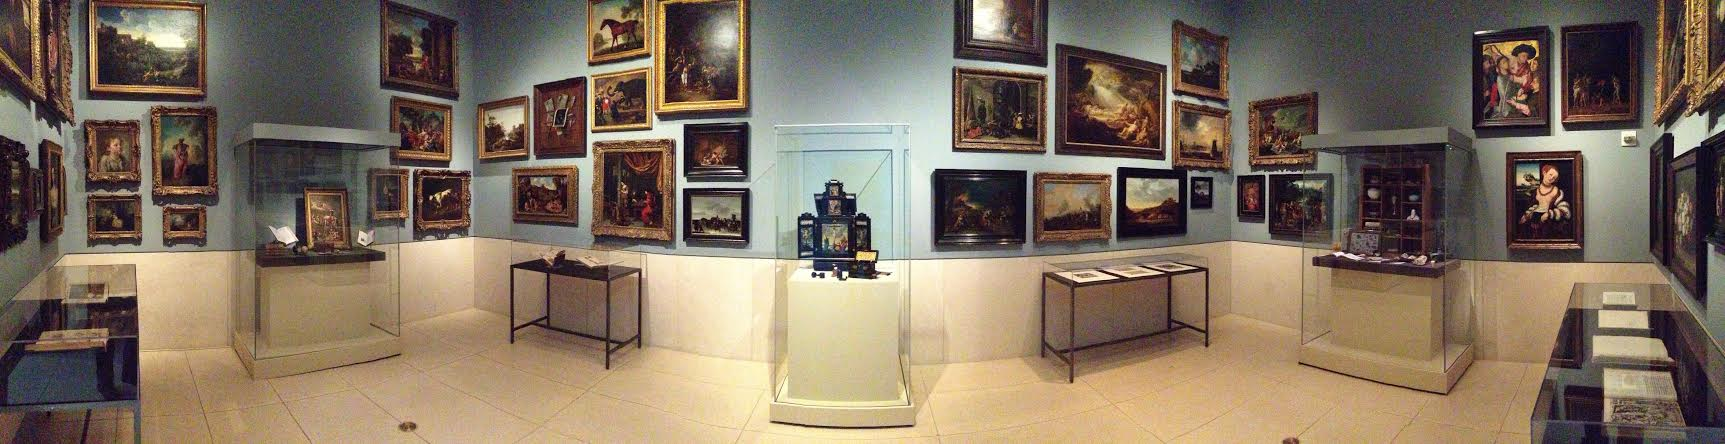 Dueling Cabinets of Curiosities: the Menil and the MFAH – Glasstire